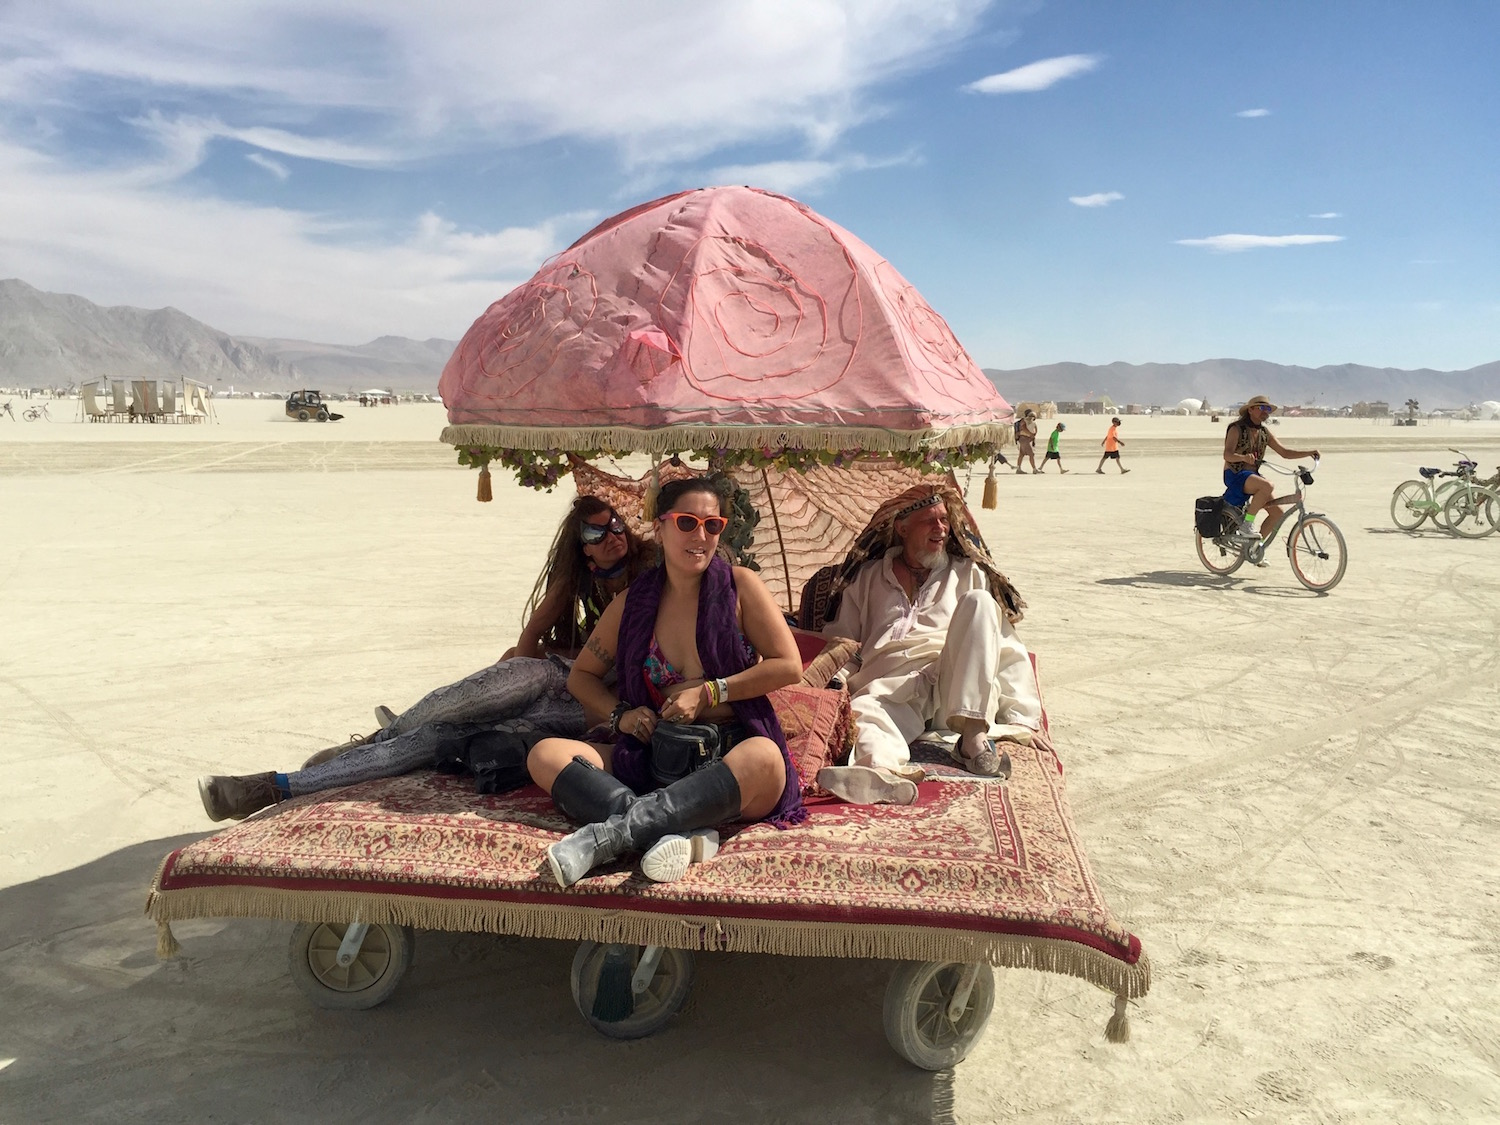 Mutant Art Car. Travelling the desert at Burning Man 2016